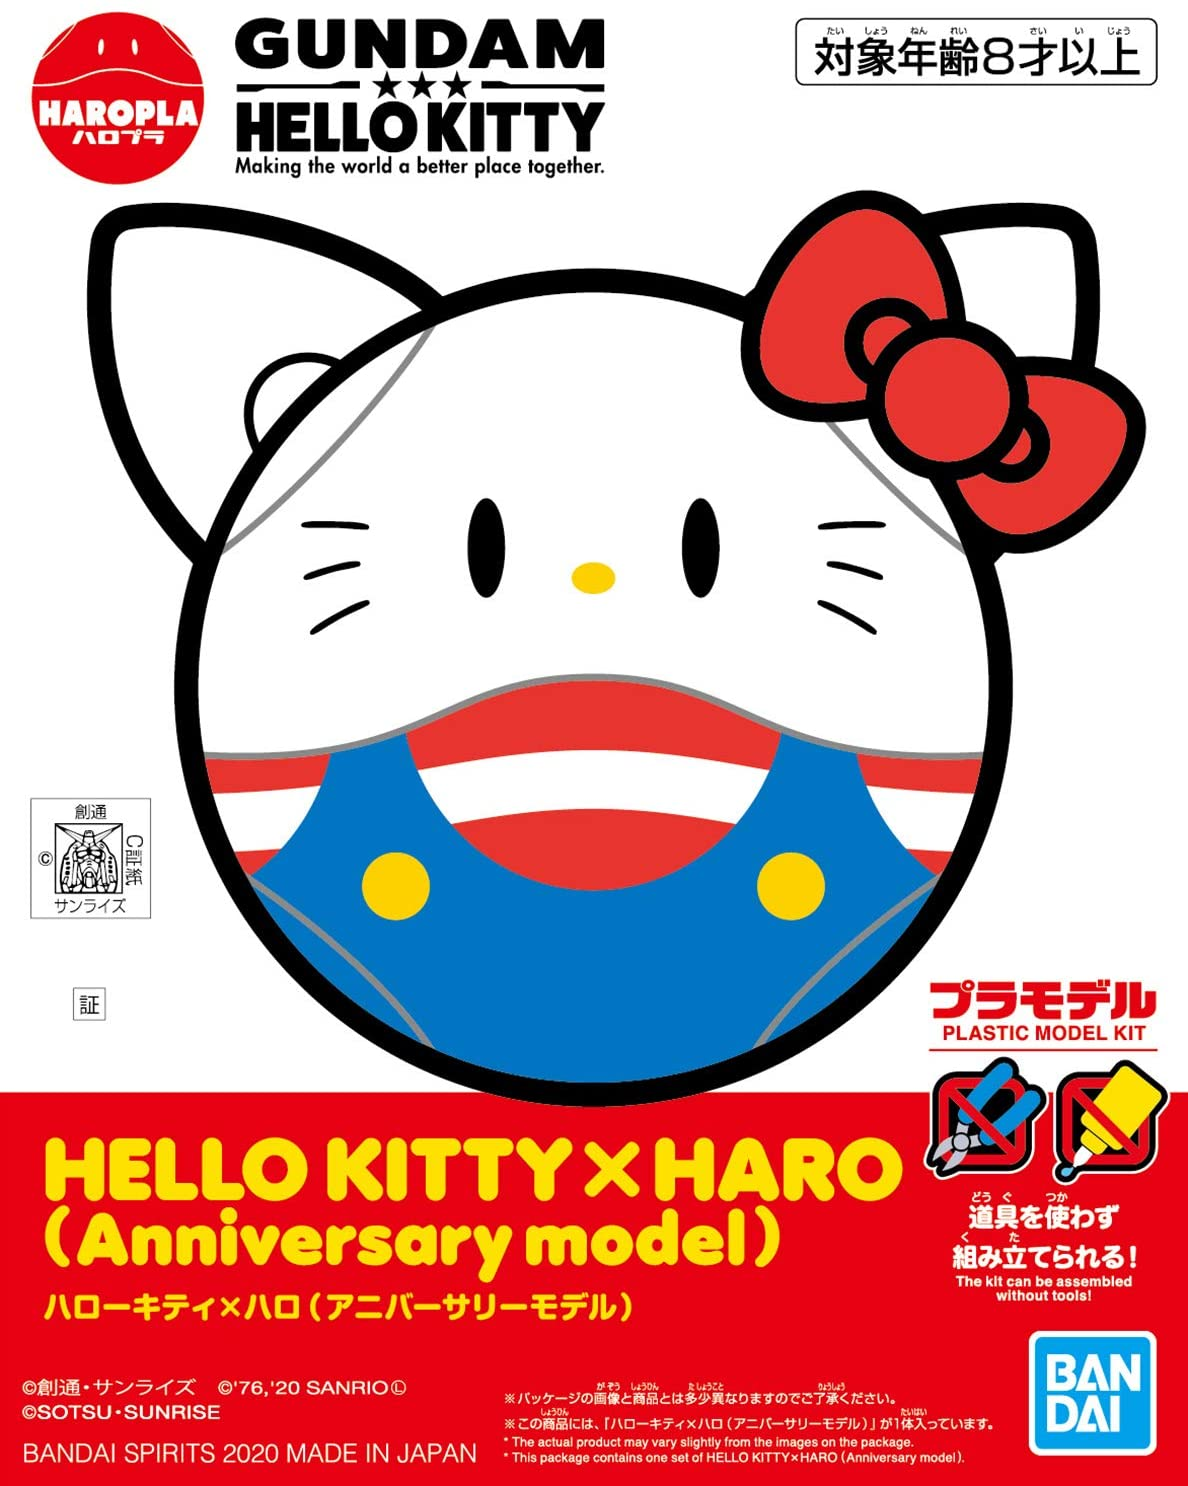 BANDAI GUN70470 HAROPLA HELLO KITTY HARO